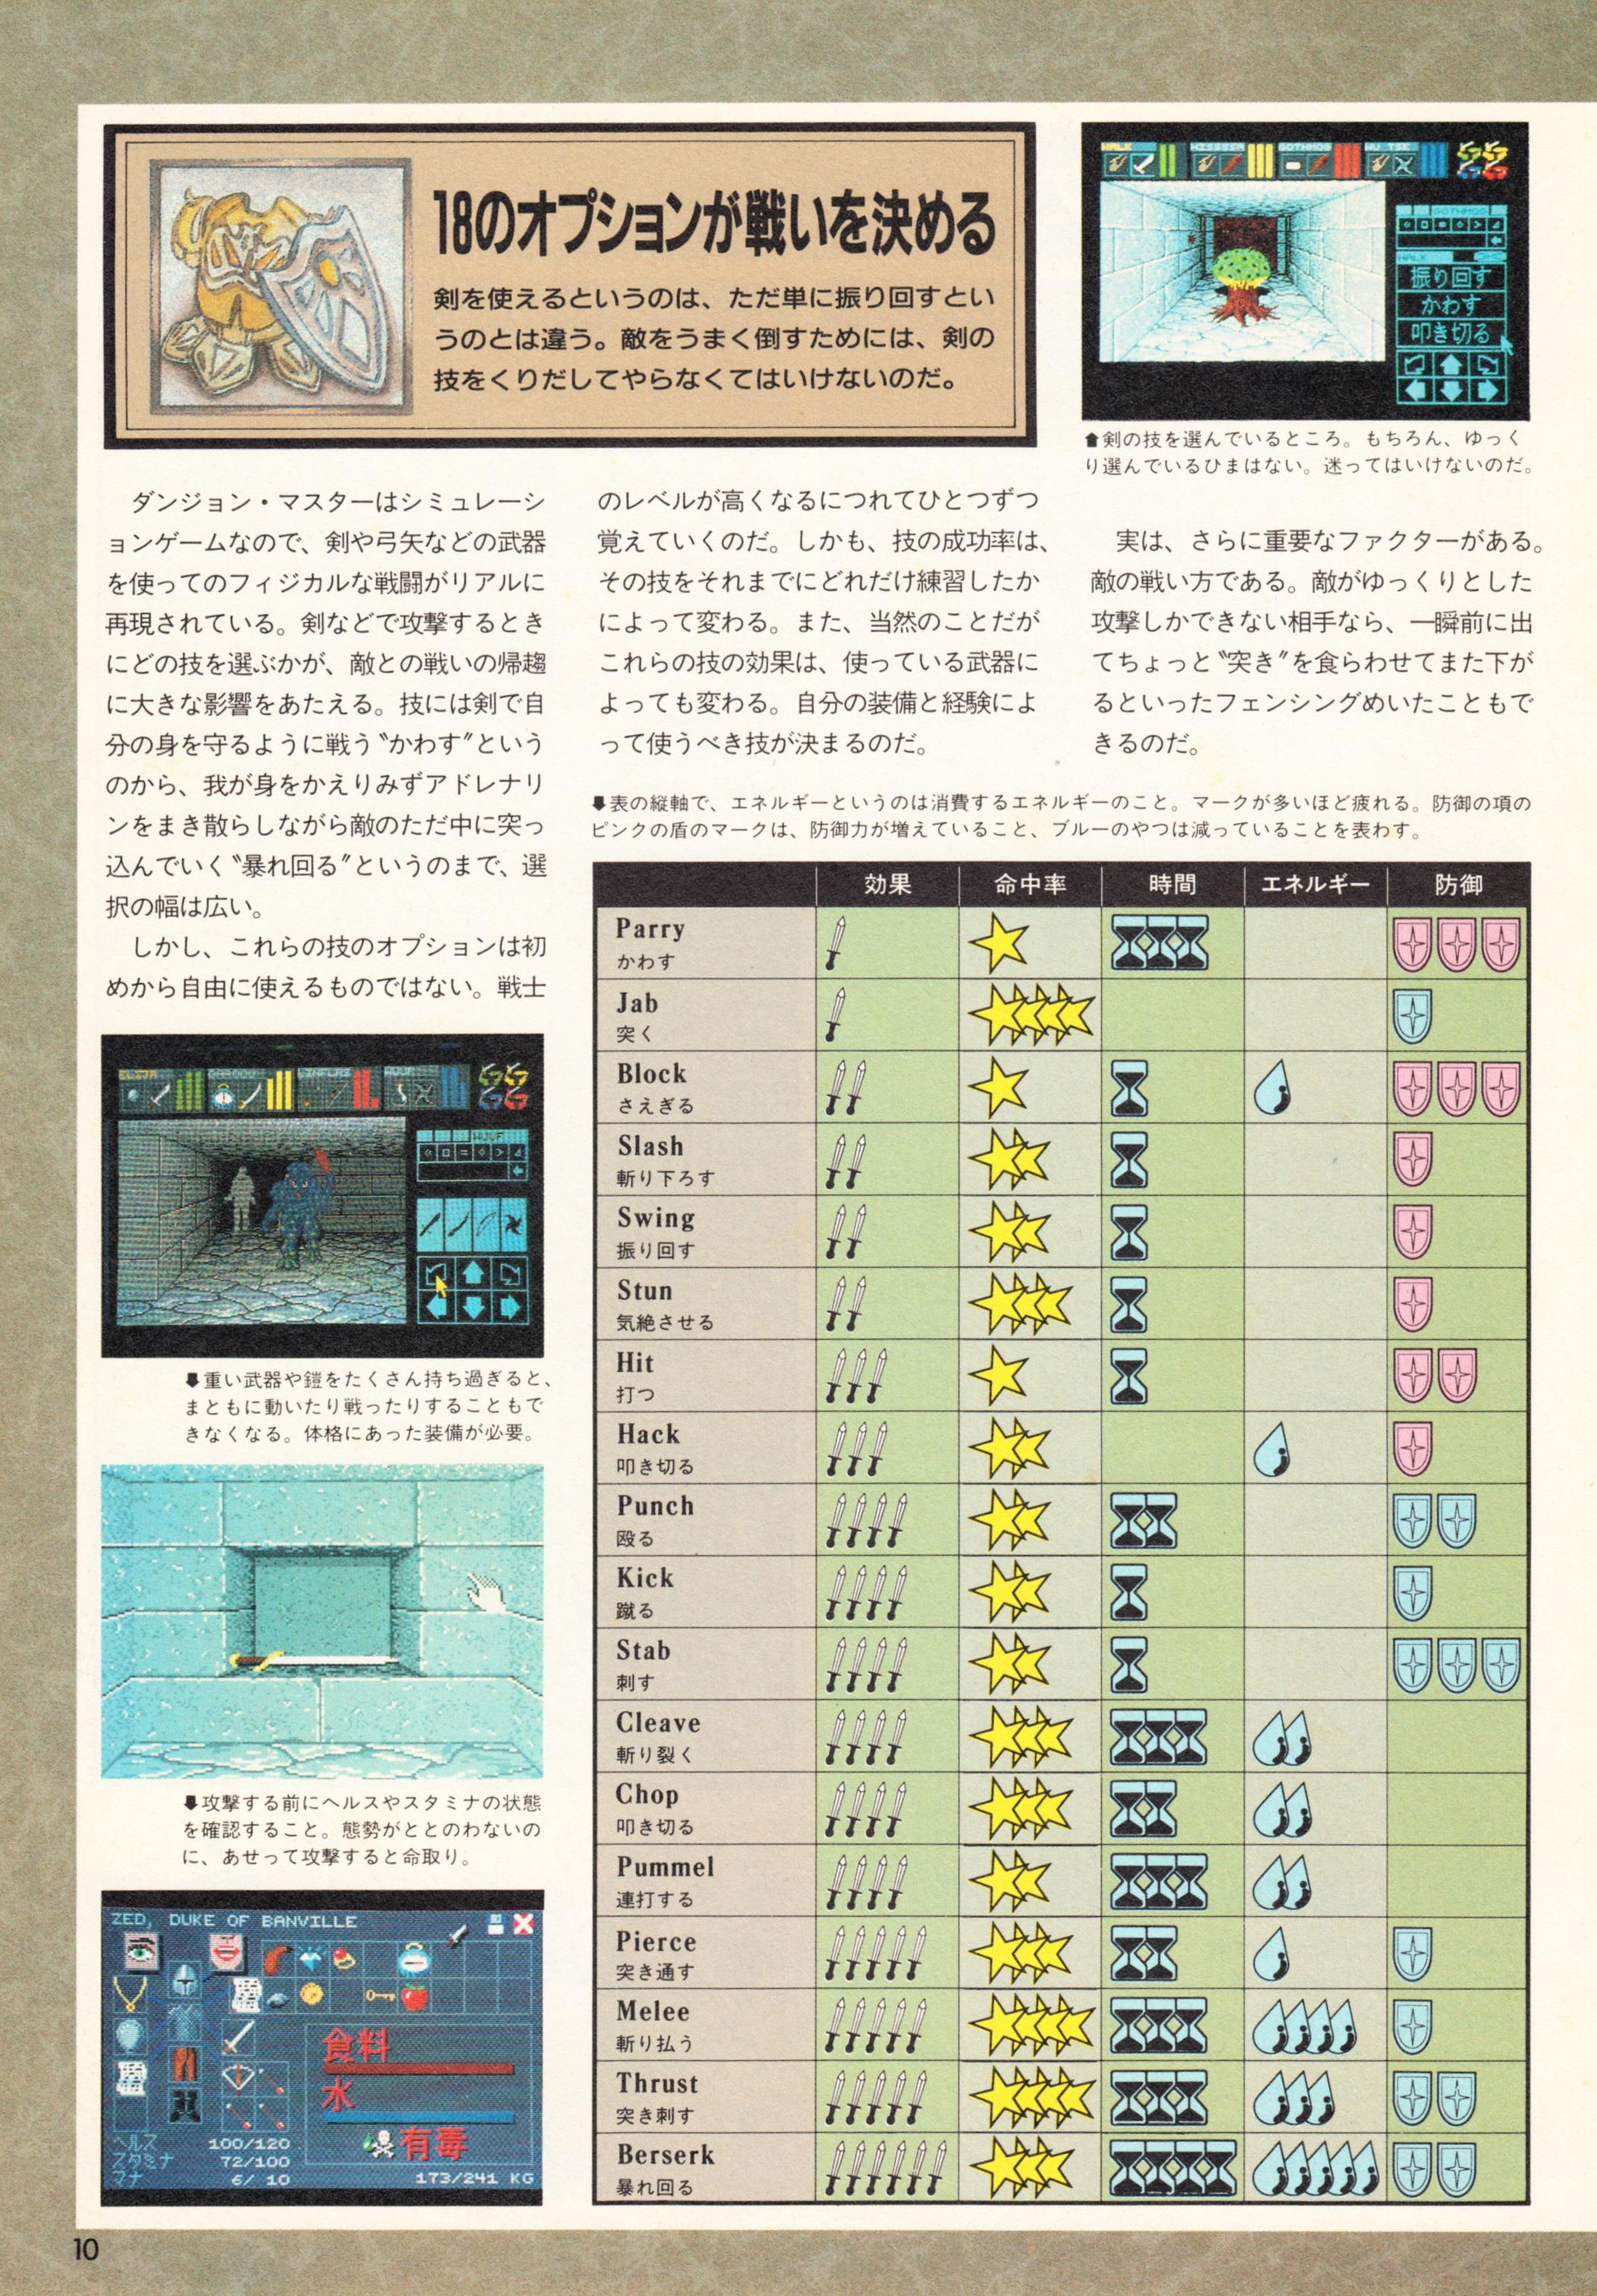 Special Supplement 2 - Dungeon Master Guide published in Japanese magazine 'Login', Vol 9 No 3 02 February 1990, Page 10